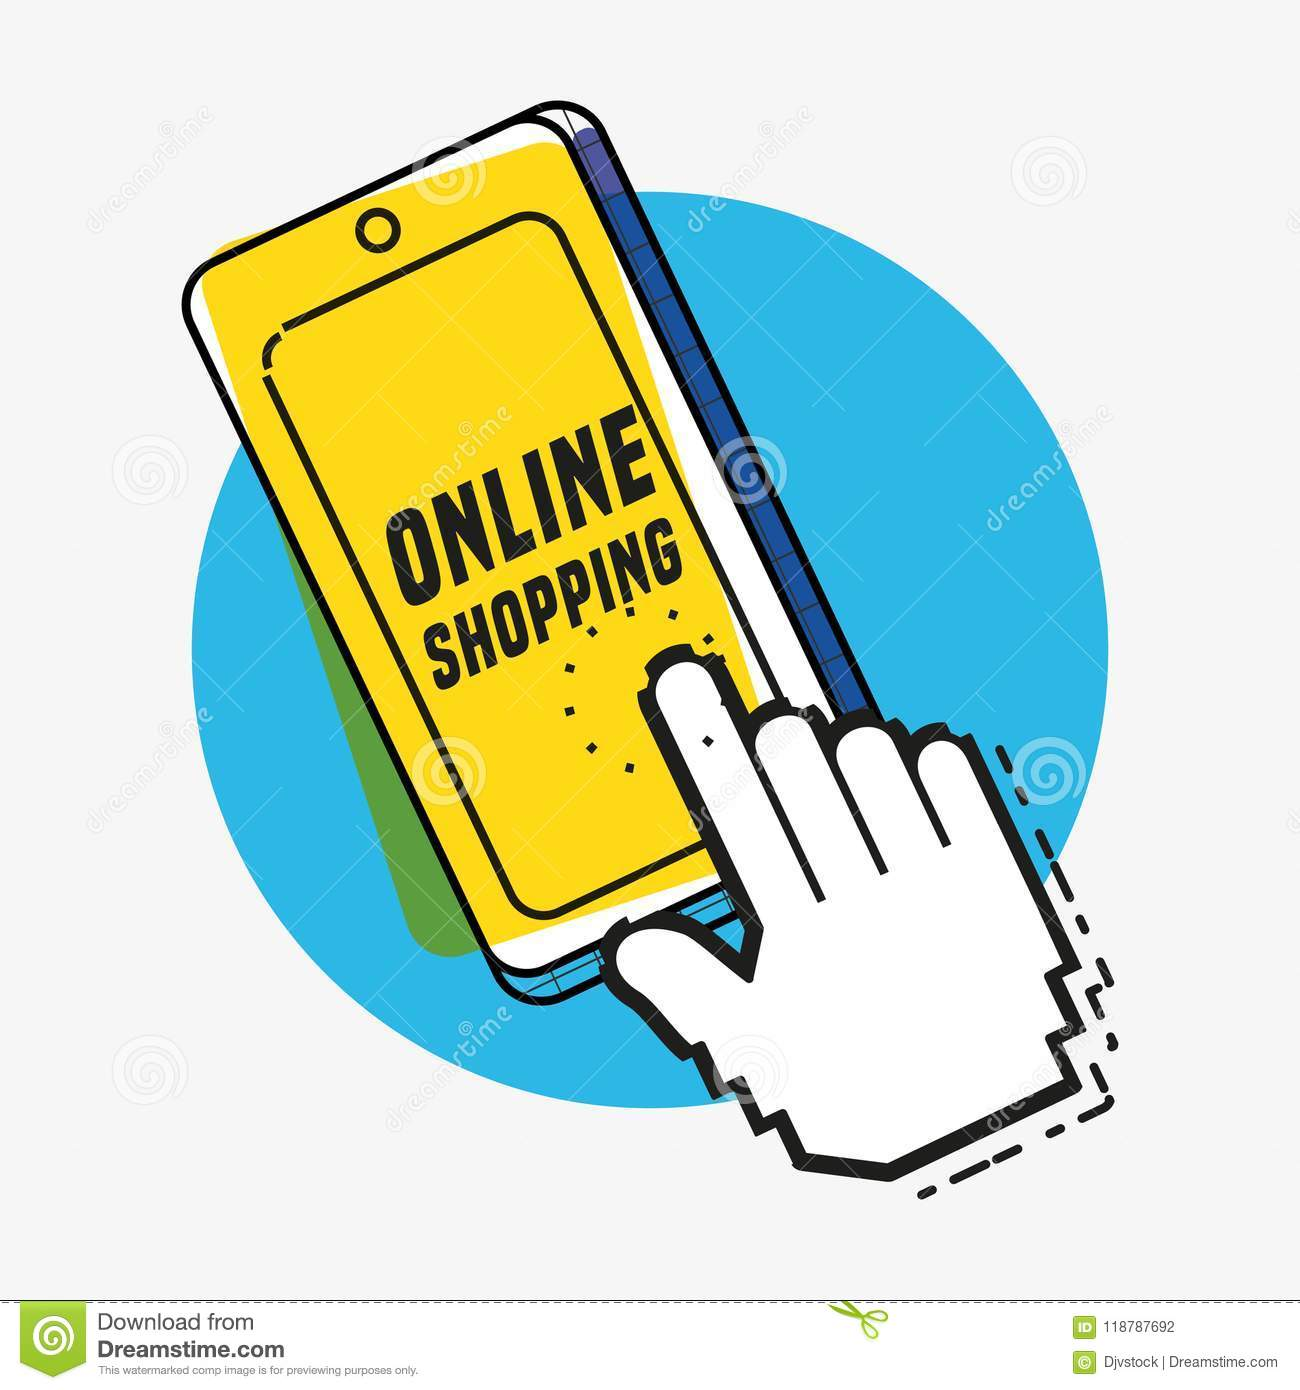 aa886f37474 Online shopping with smartphone pop art style vector illustration design.  More similar stock illustrations